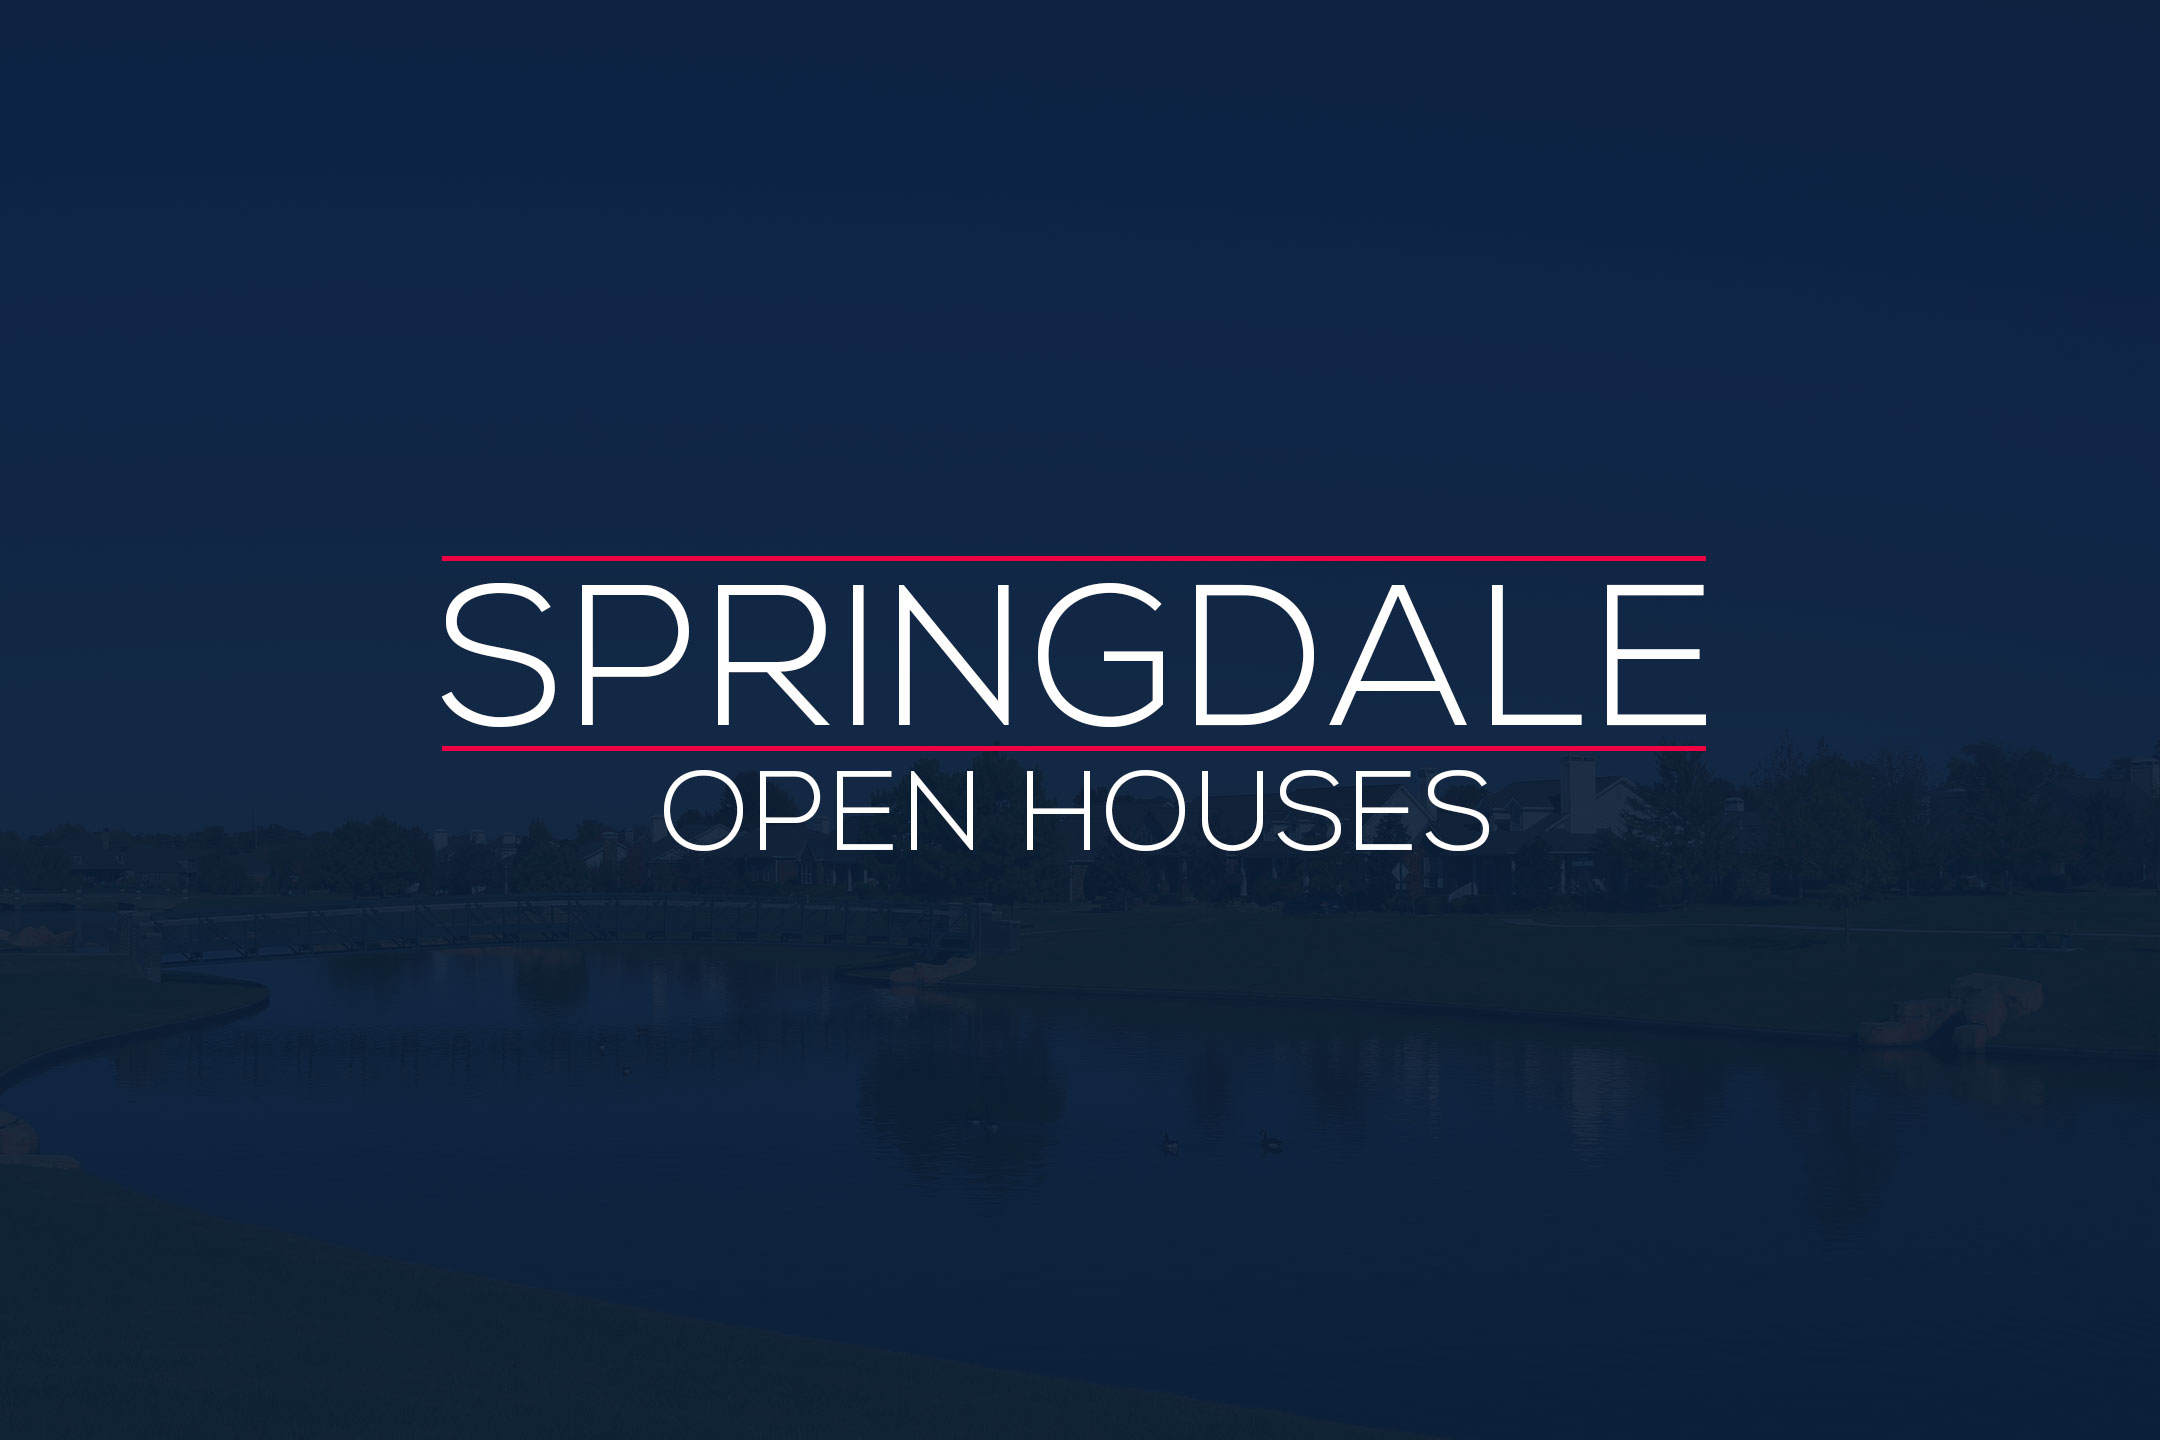 Springdale Open Houses